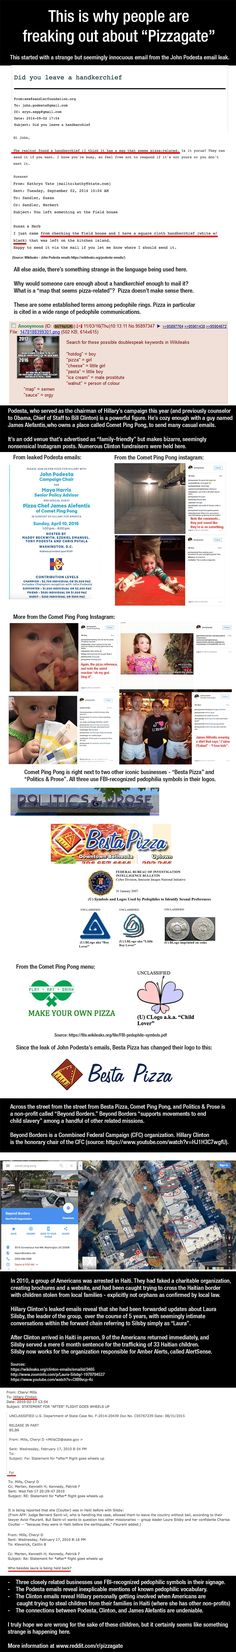 This is why all the 'conspiracy theorists' are concerned. Because PEDOPHILES and HUMAN TRAFFICKING.